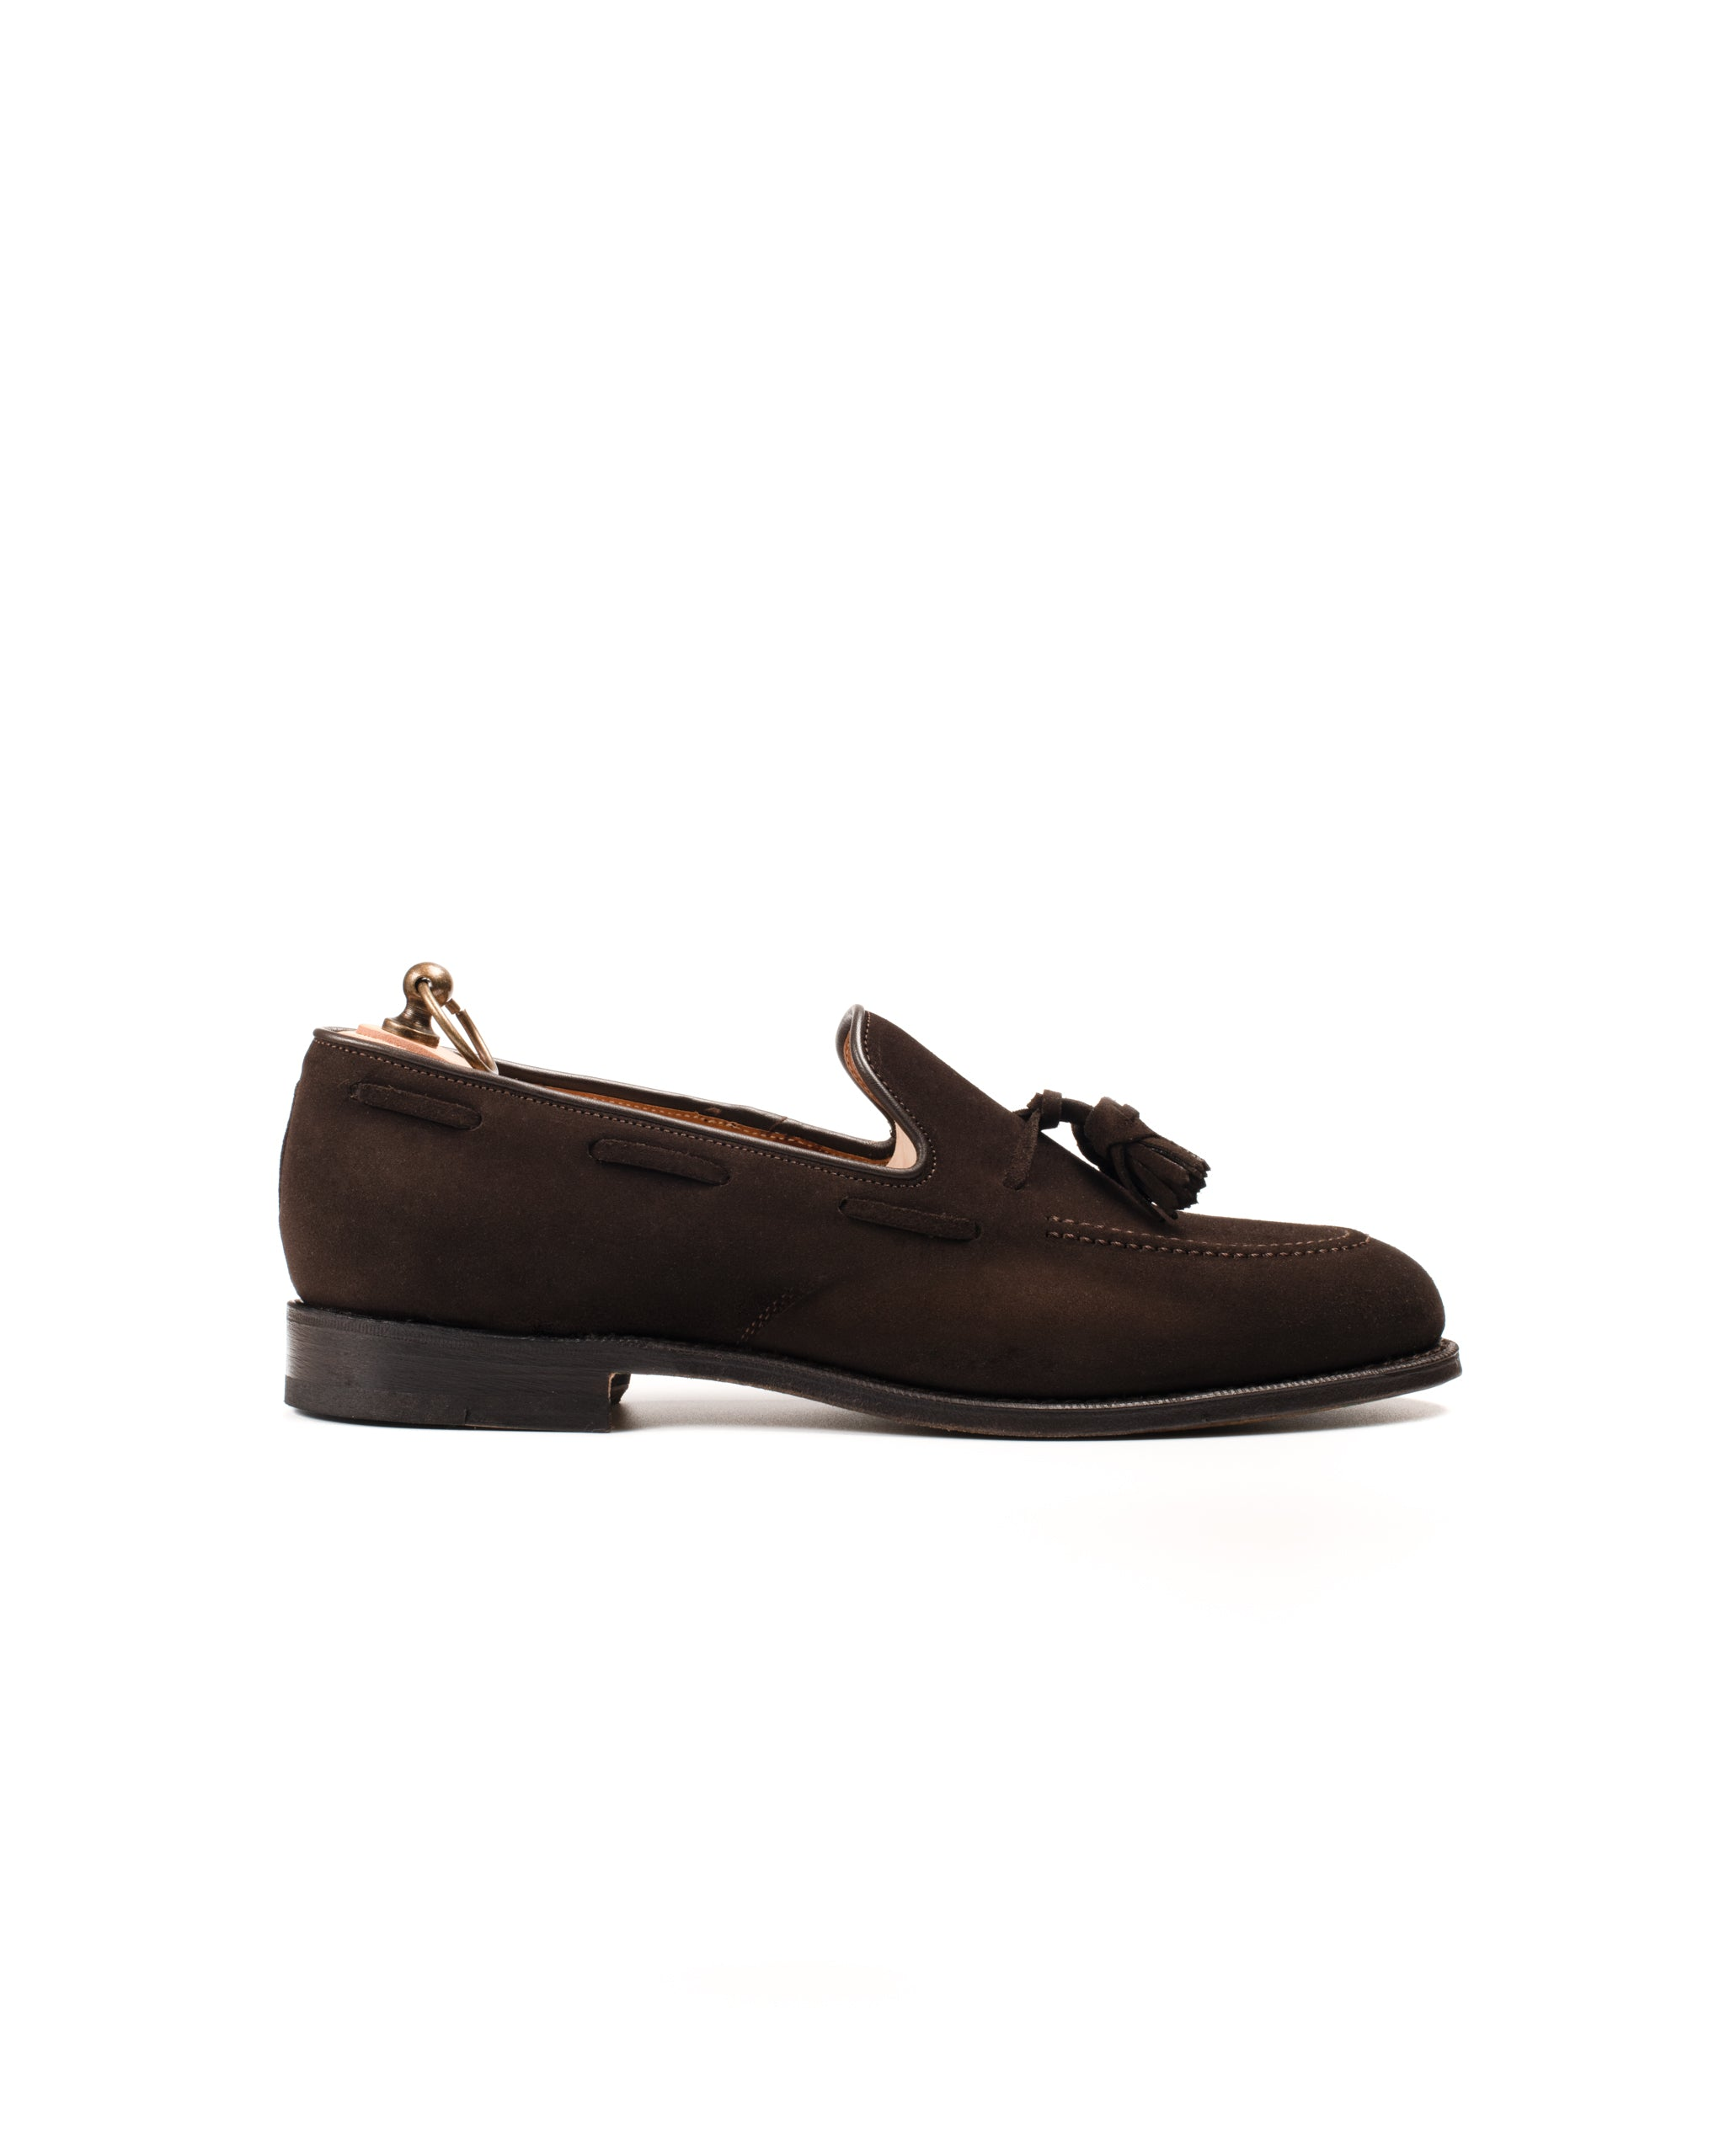 Tassel Loafer // English Suede // Dunkelbraun // Rendenbach Ledersohle